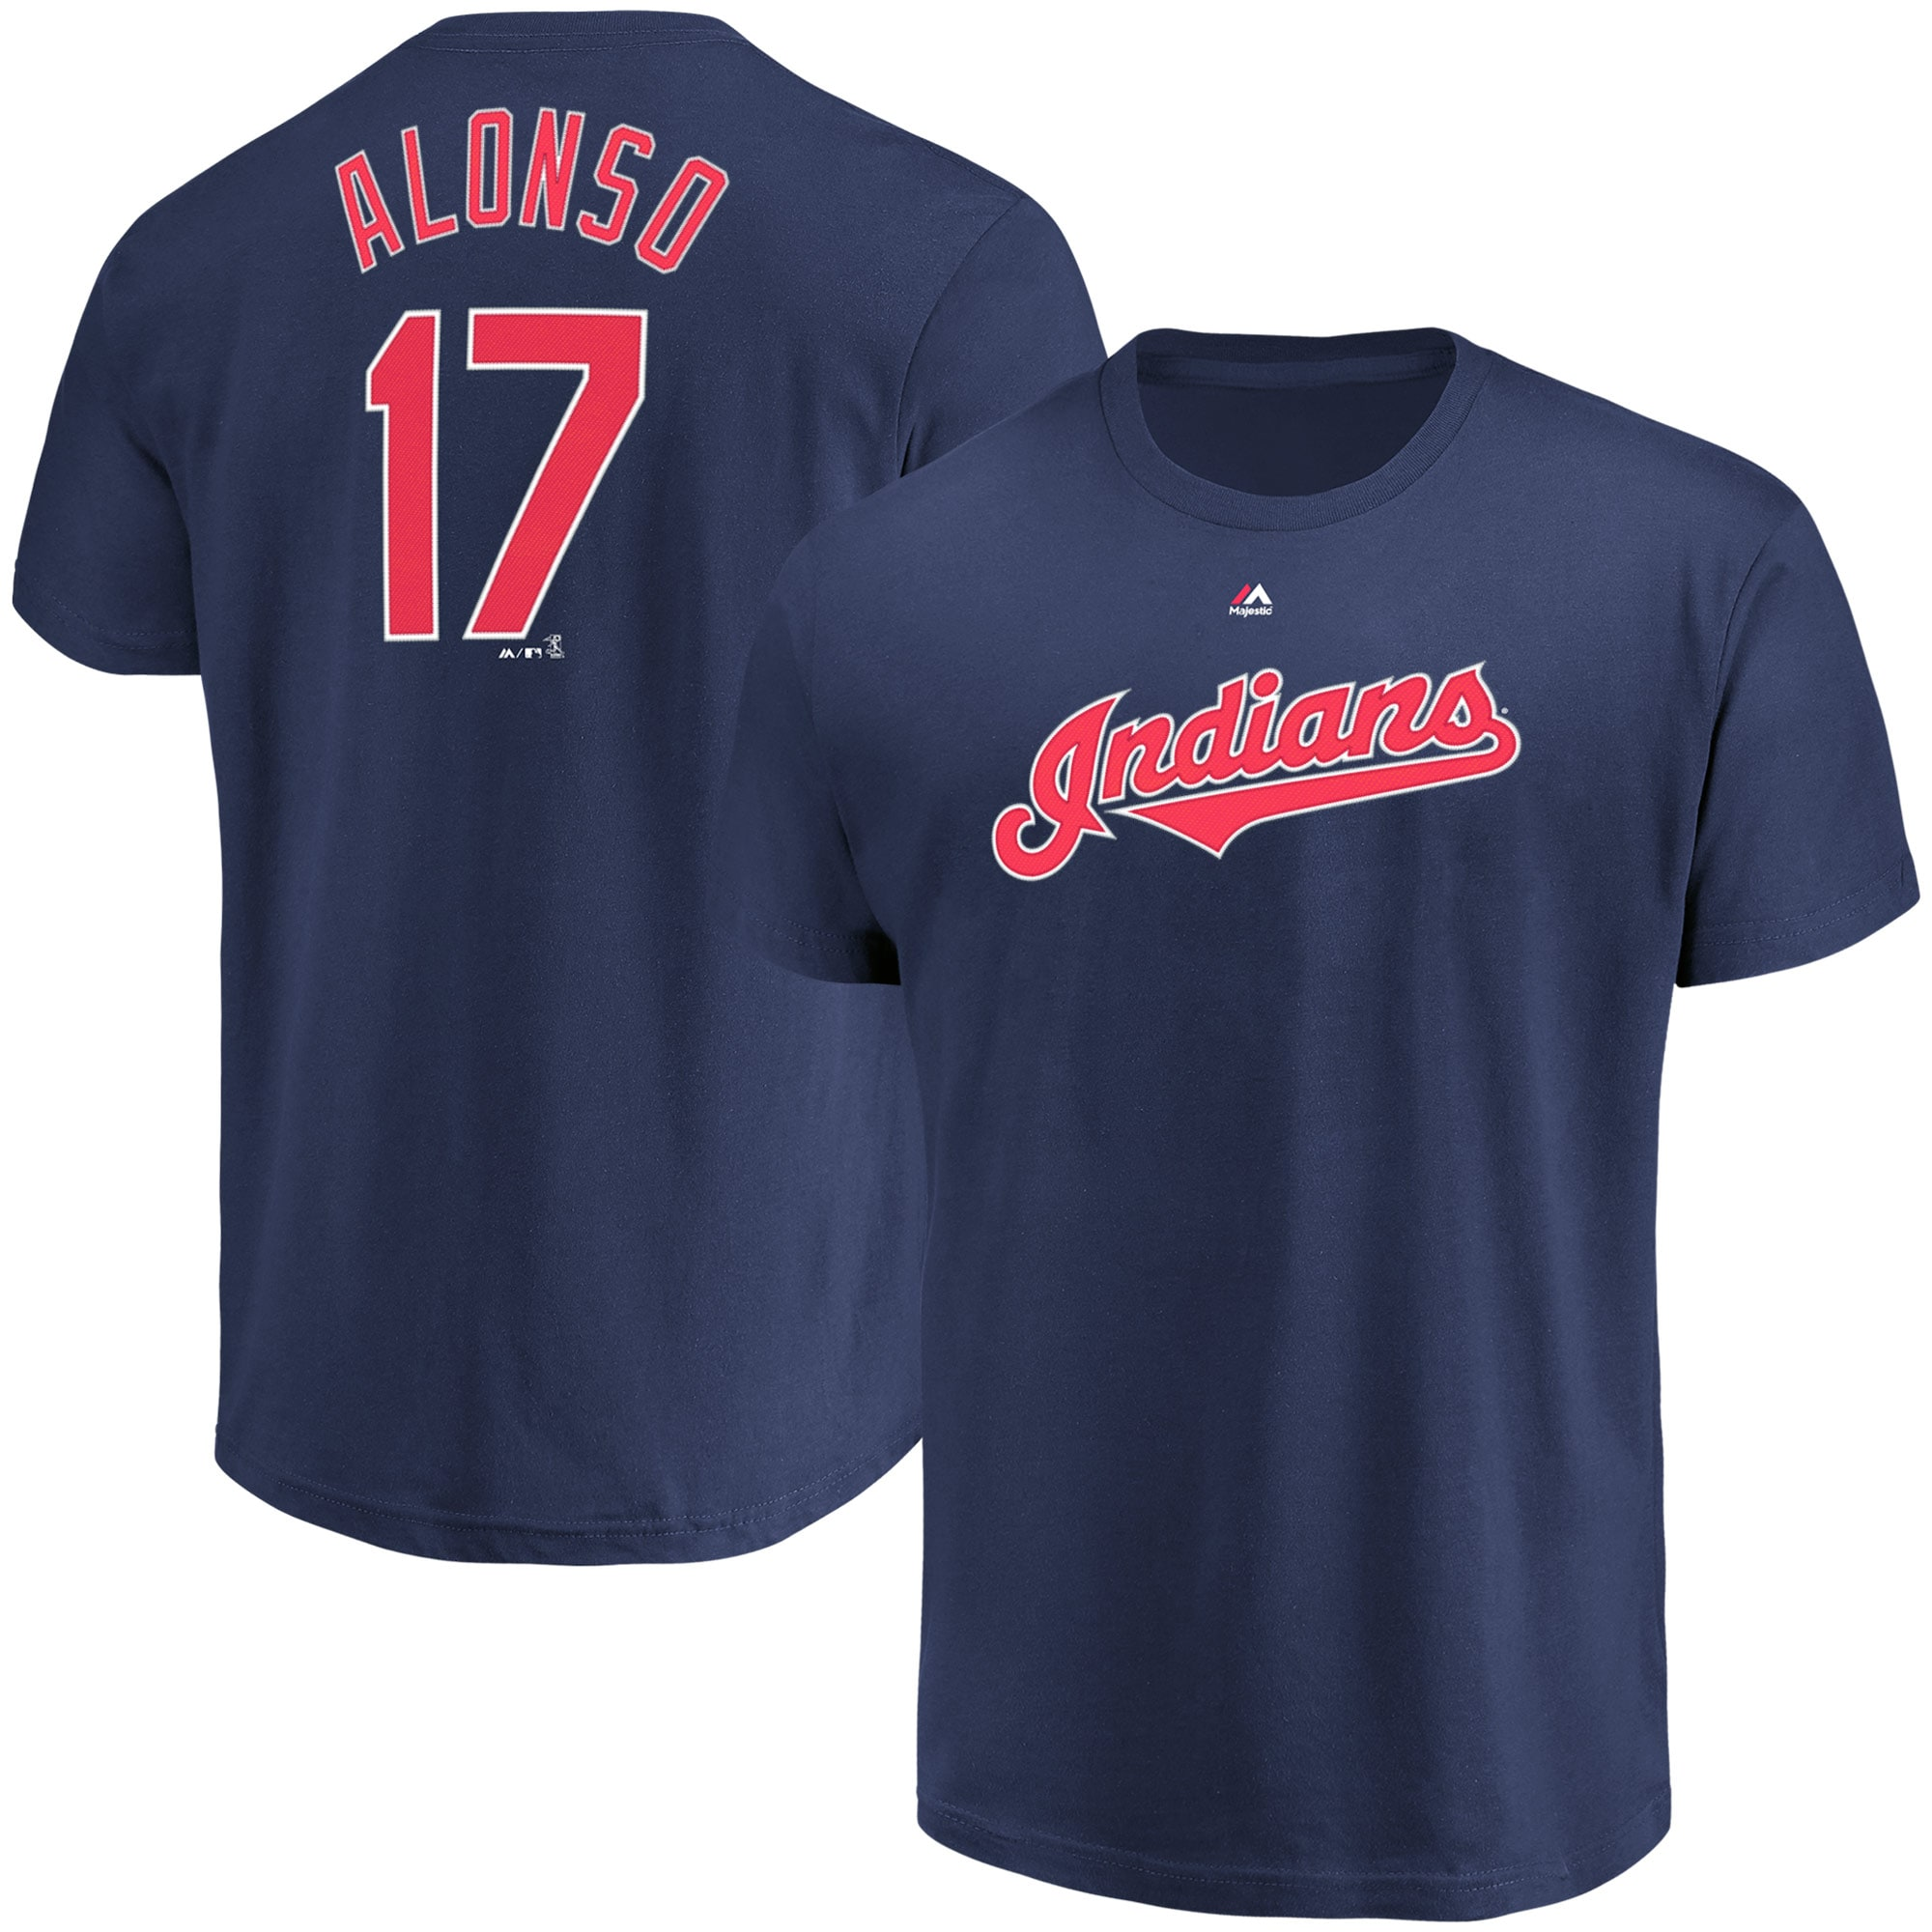 Yonder Alonso Cleveland Indians Majestic Official Name & Number T-Shirt - Navy